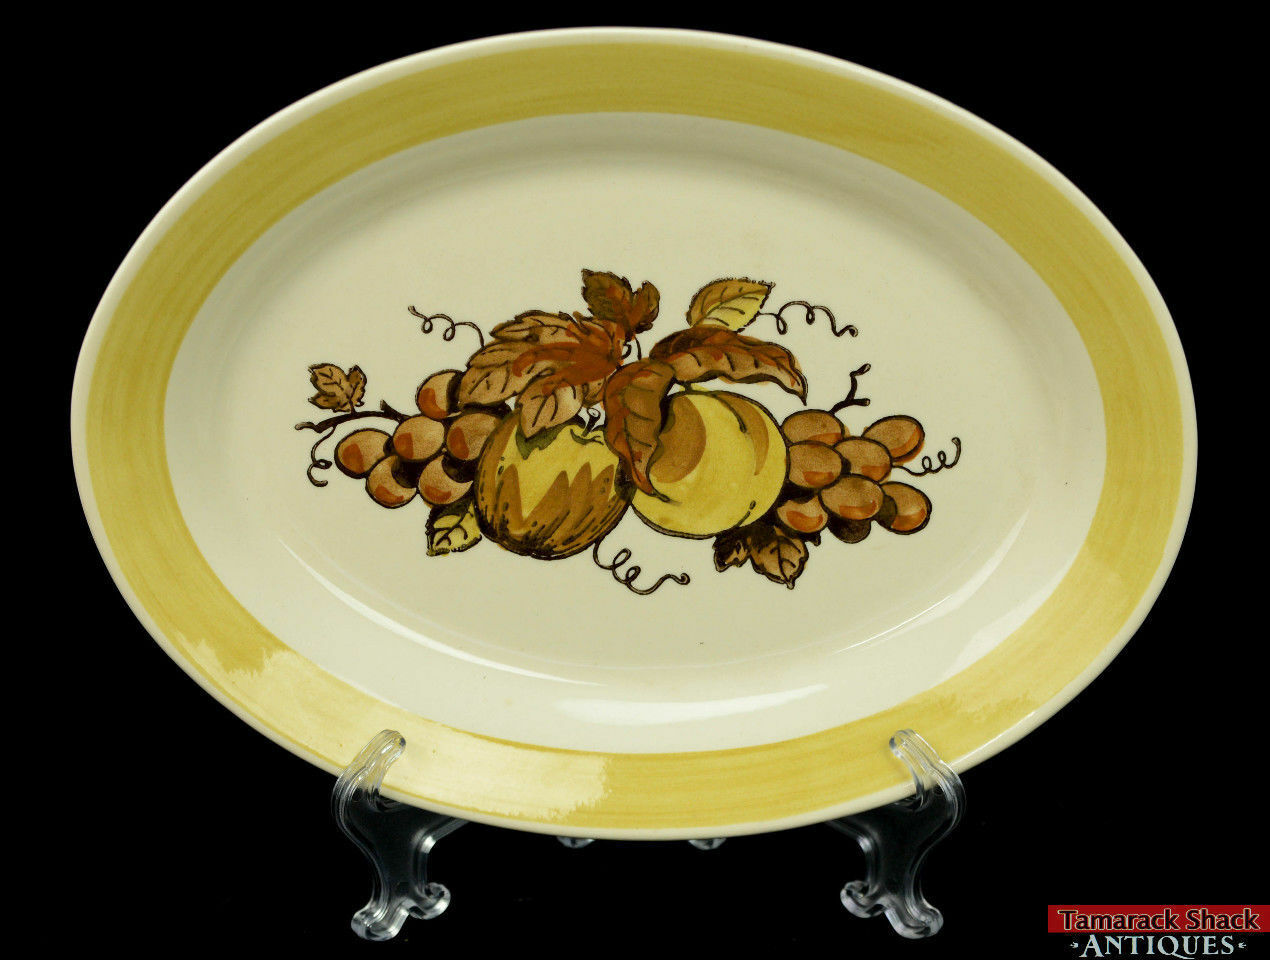 VTG-3-pc-Metlox-Poppytrail-Golden-Fruit-Pitcher-Vegetable-Bowl-Serving-Platter-291536581585-3.jpg